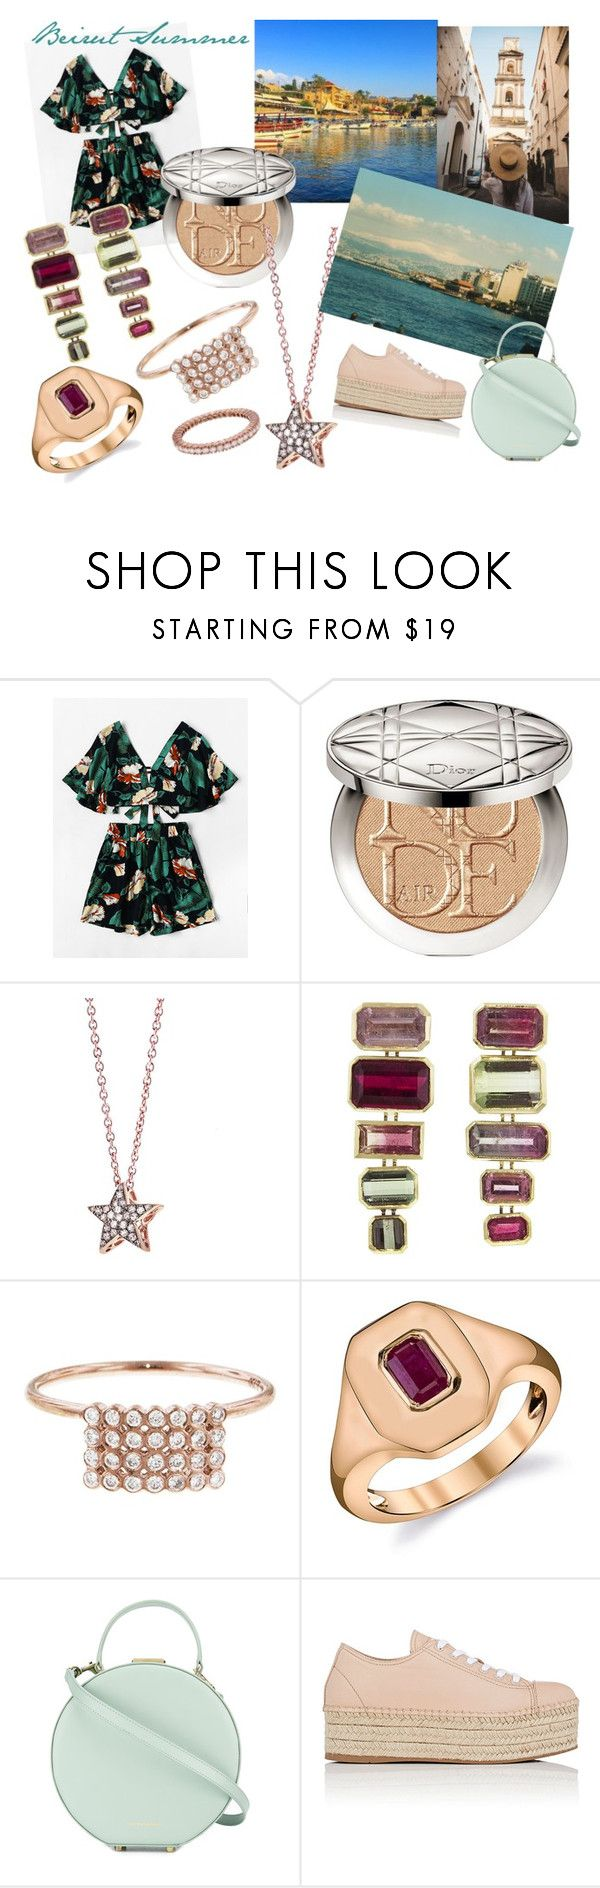 """""""Beirut Summer Look"""" by joanneylang23 ❤ liked on Polyvore featuring Christian Dior, Selim Mouzannar, Yannis Sergakis Adornments, Shay, Tammy & Benjamin, Miu Miu and Sethi Couture"""